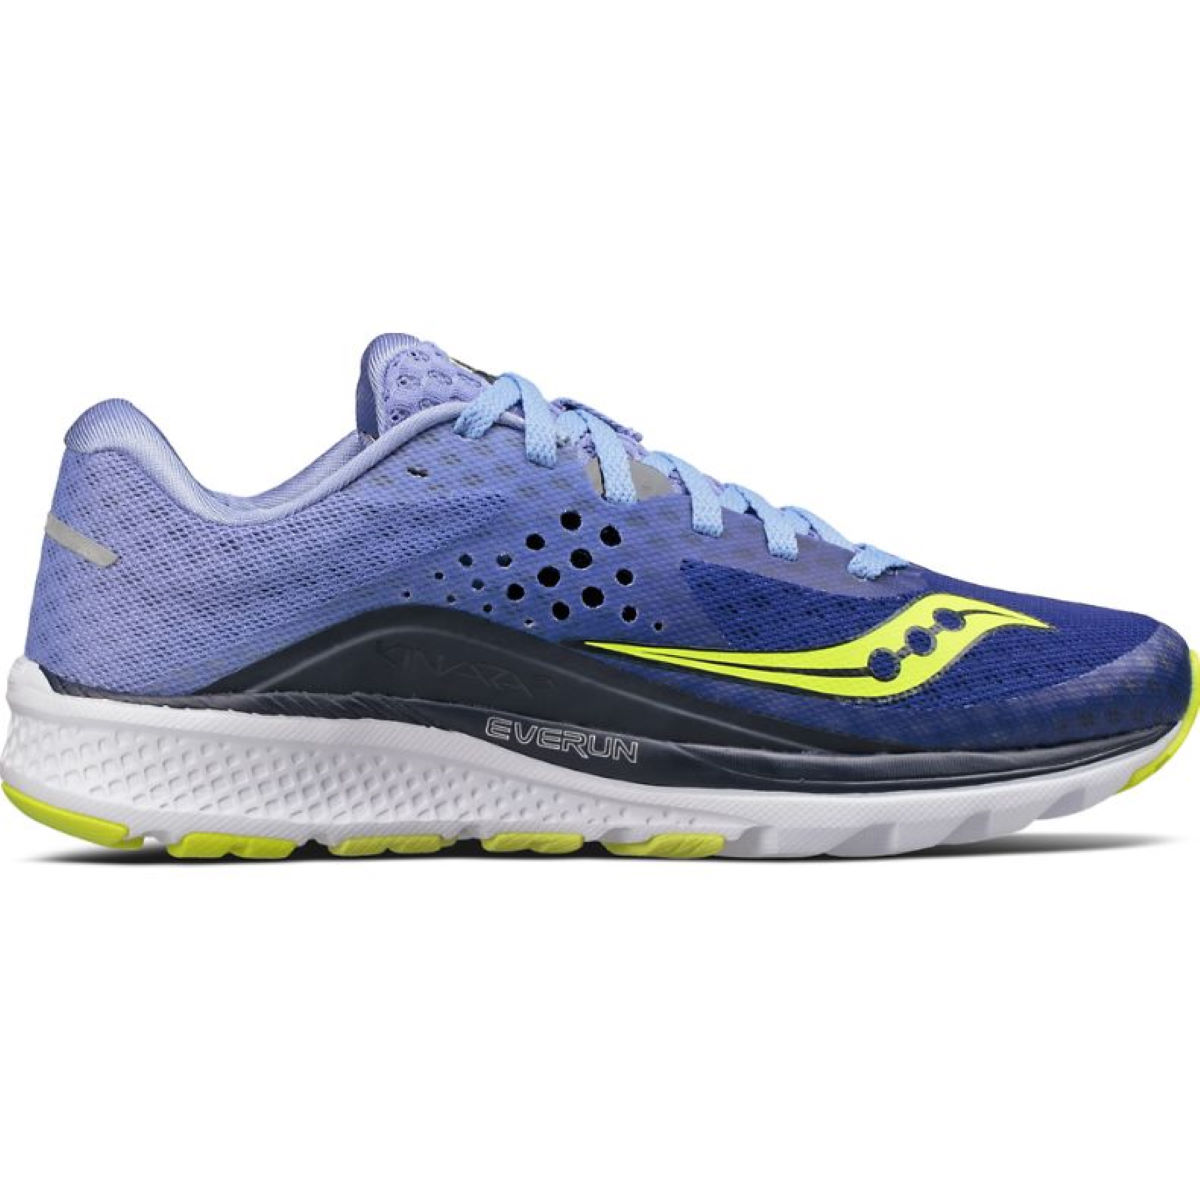 Chaussures Femme Saucony Kinvara 8 - UK 8.5 Navy/Purple